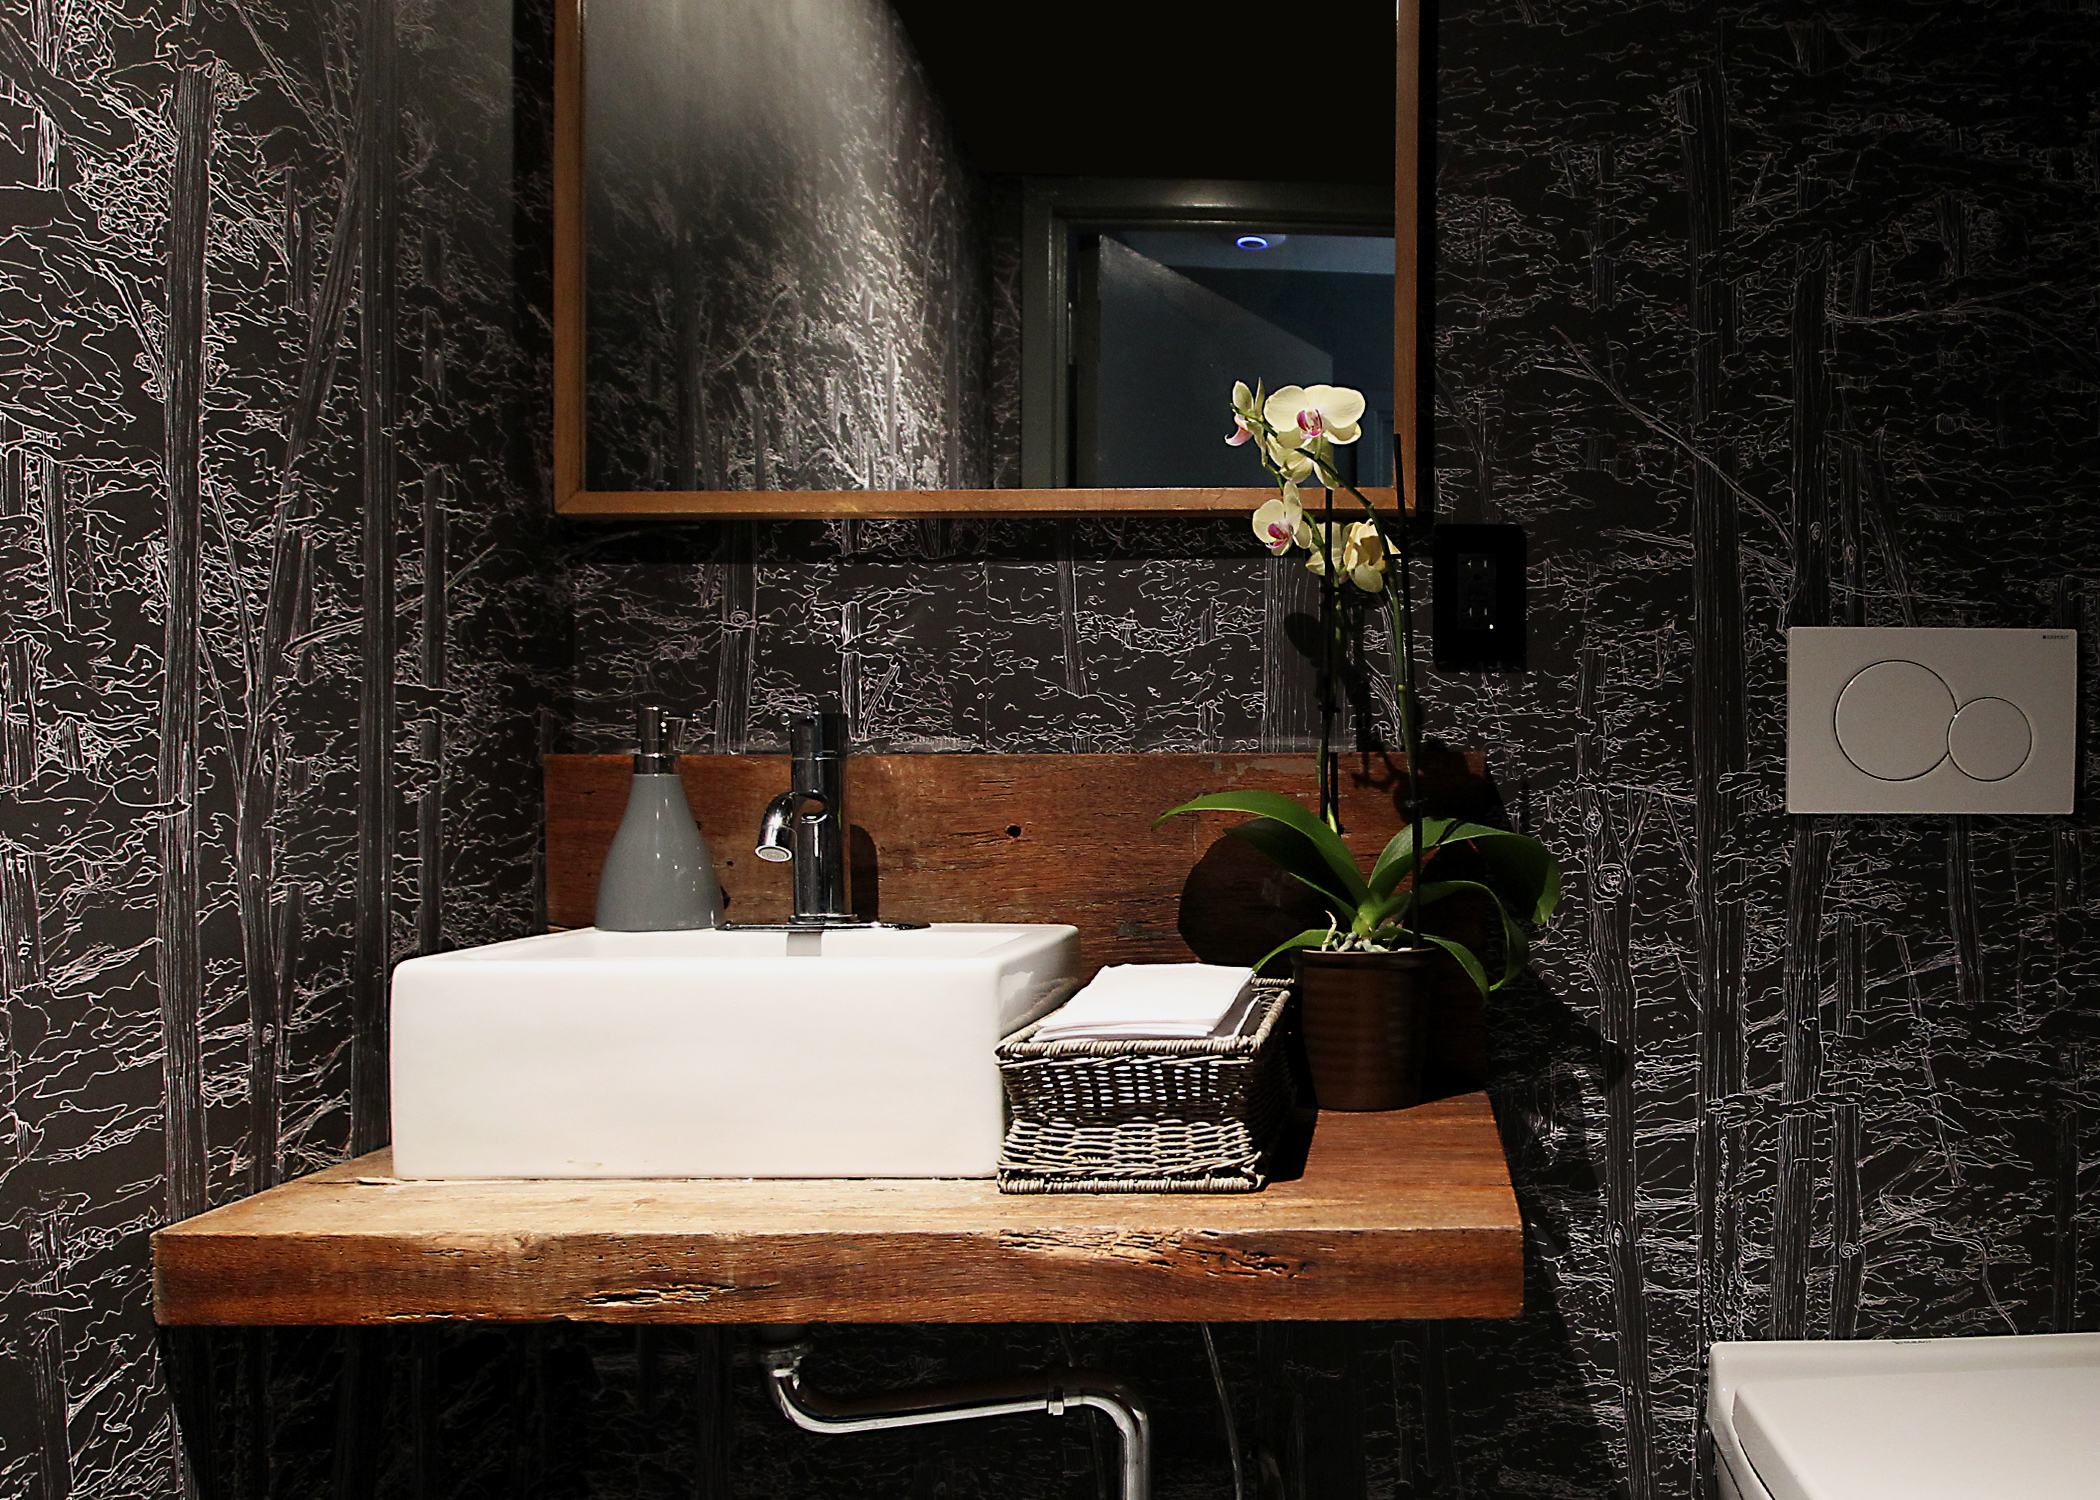 The bathrooms, refreshed with a new, unique, custom-designed wall paper to all walls and ceilings, create an ablutions experience unlike any other in NYC.